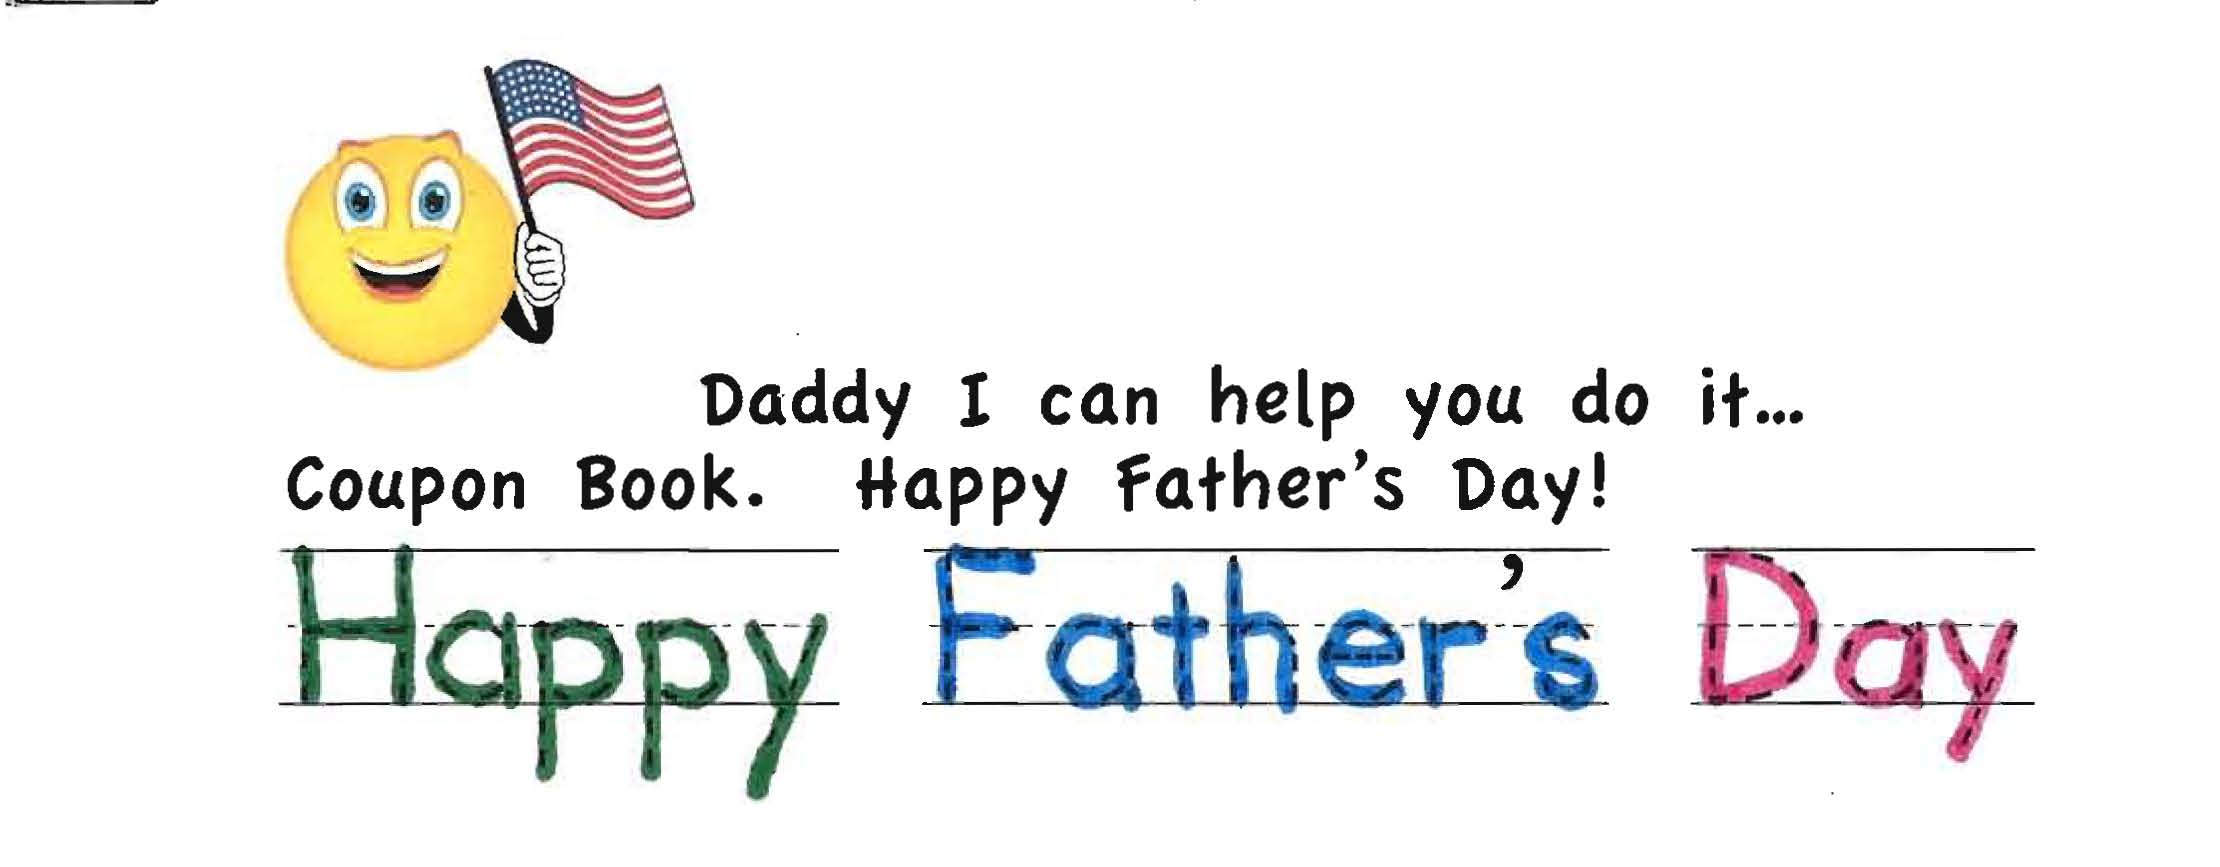 Father's Day coupon, Father's day ideas, Father'd day books, June books to read, father's day cards